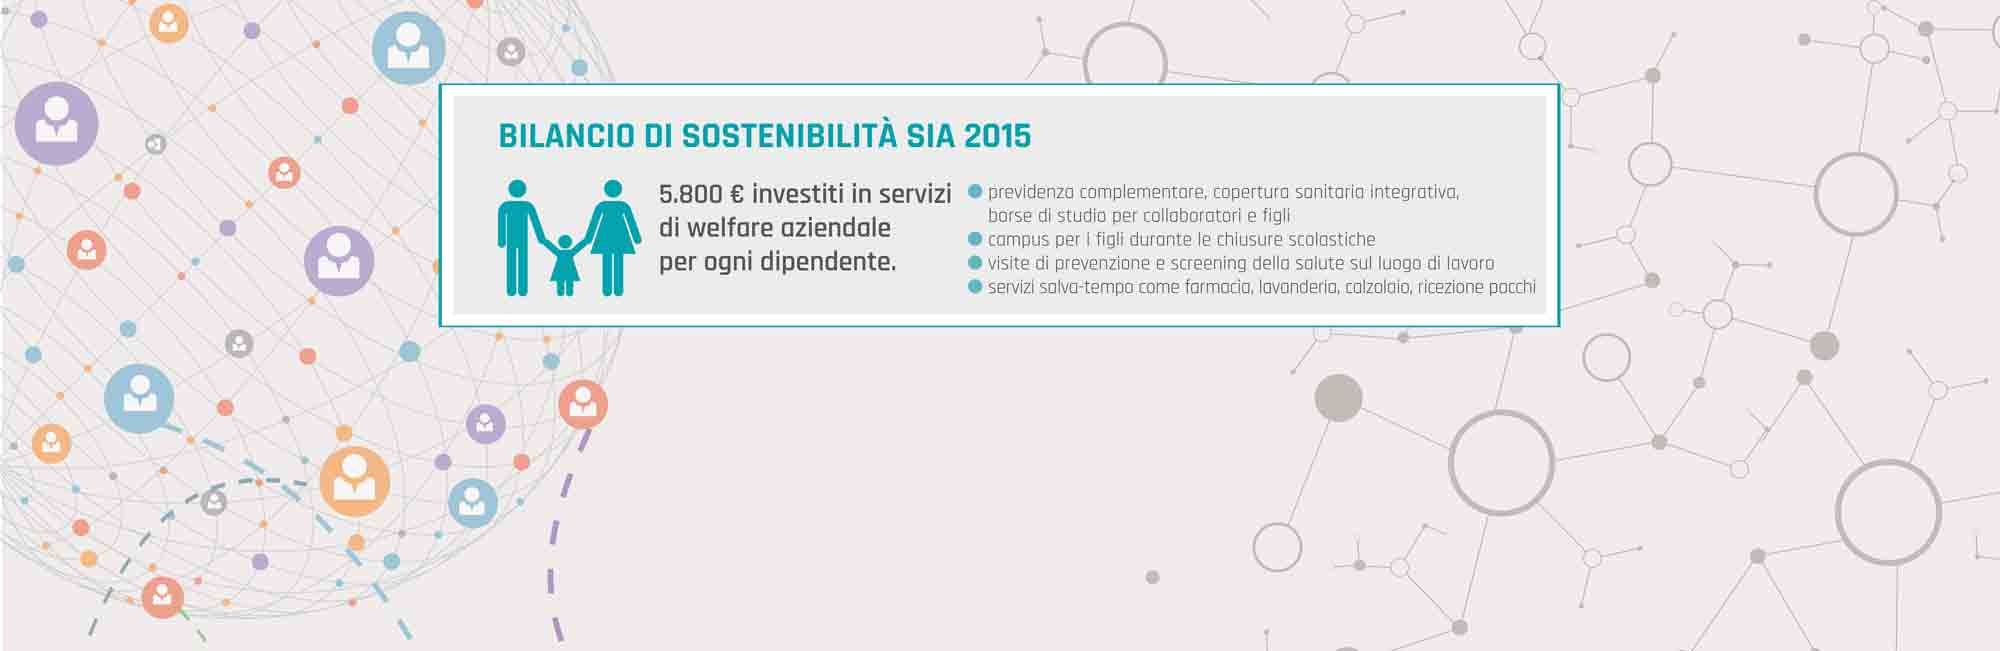 Briefing milano web graphic key figures SIA bilancio sostenibilità 2015-1